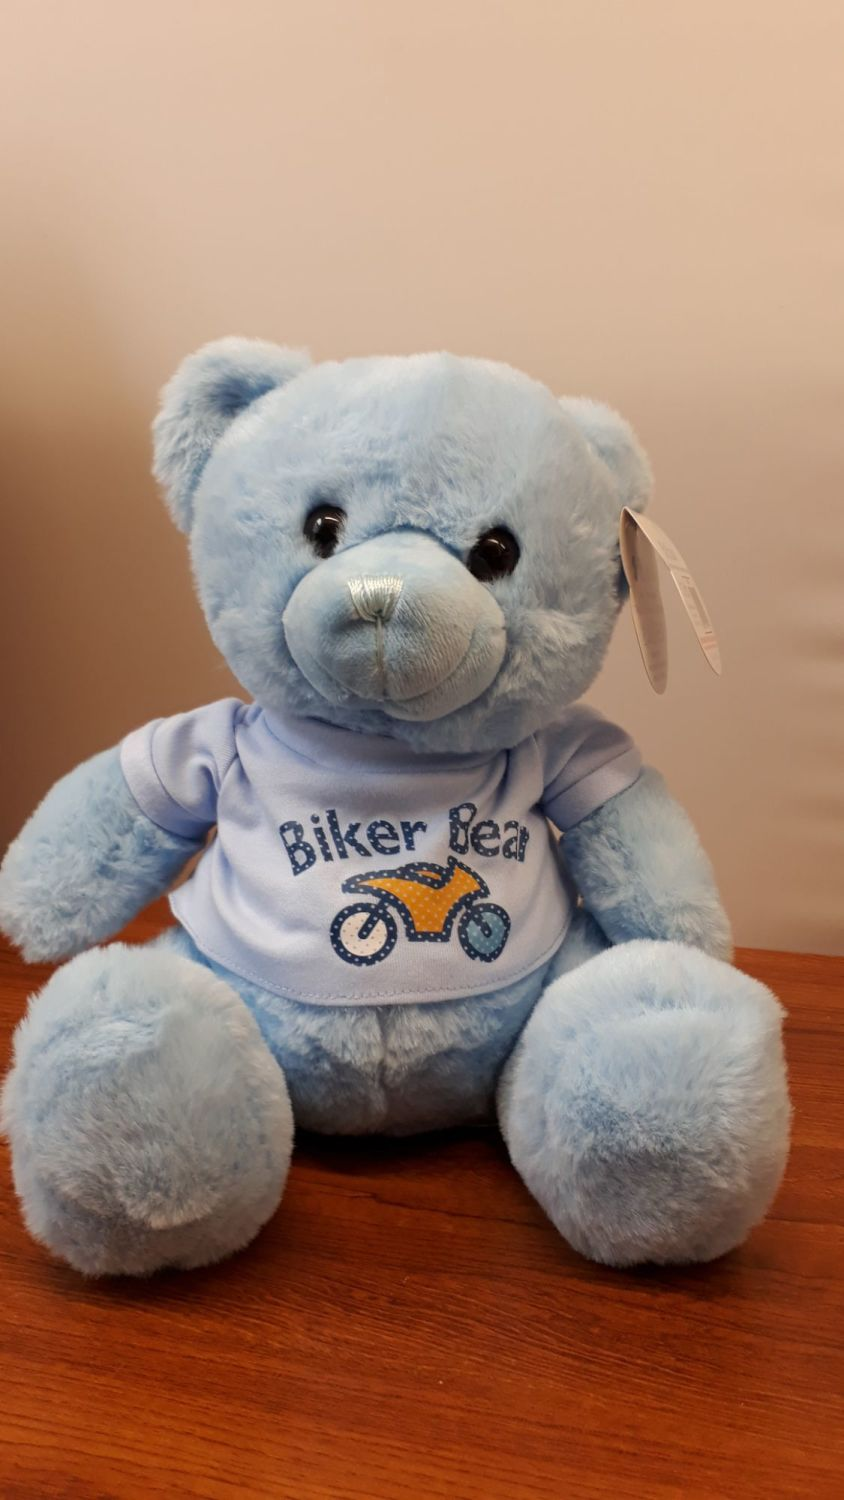 Blue super soft biker teddy bear with a fitted t shirt